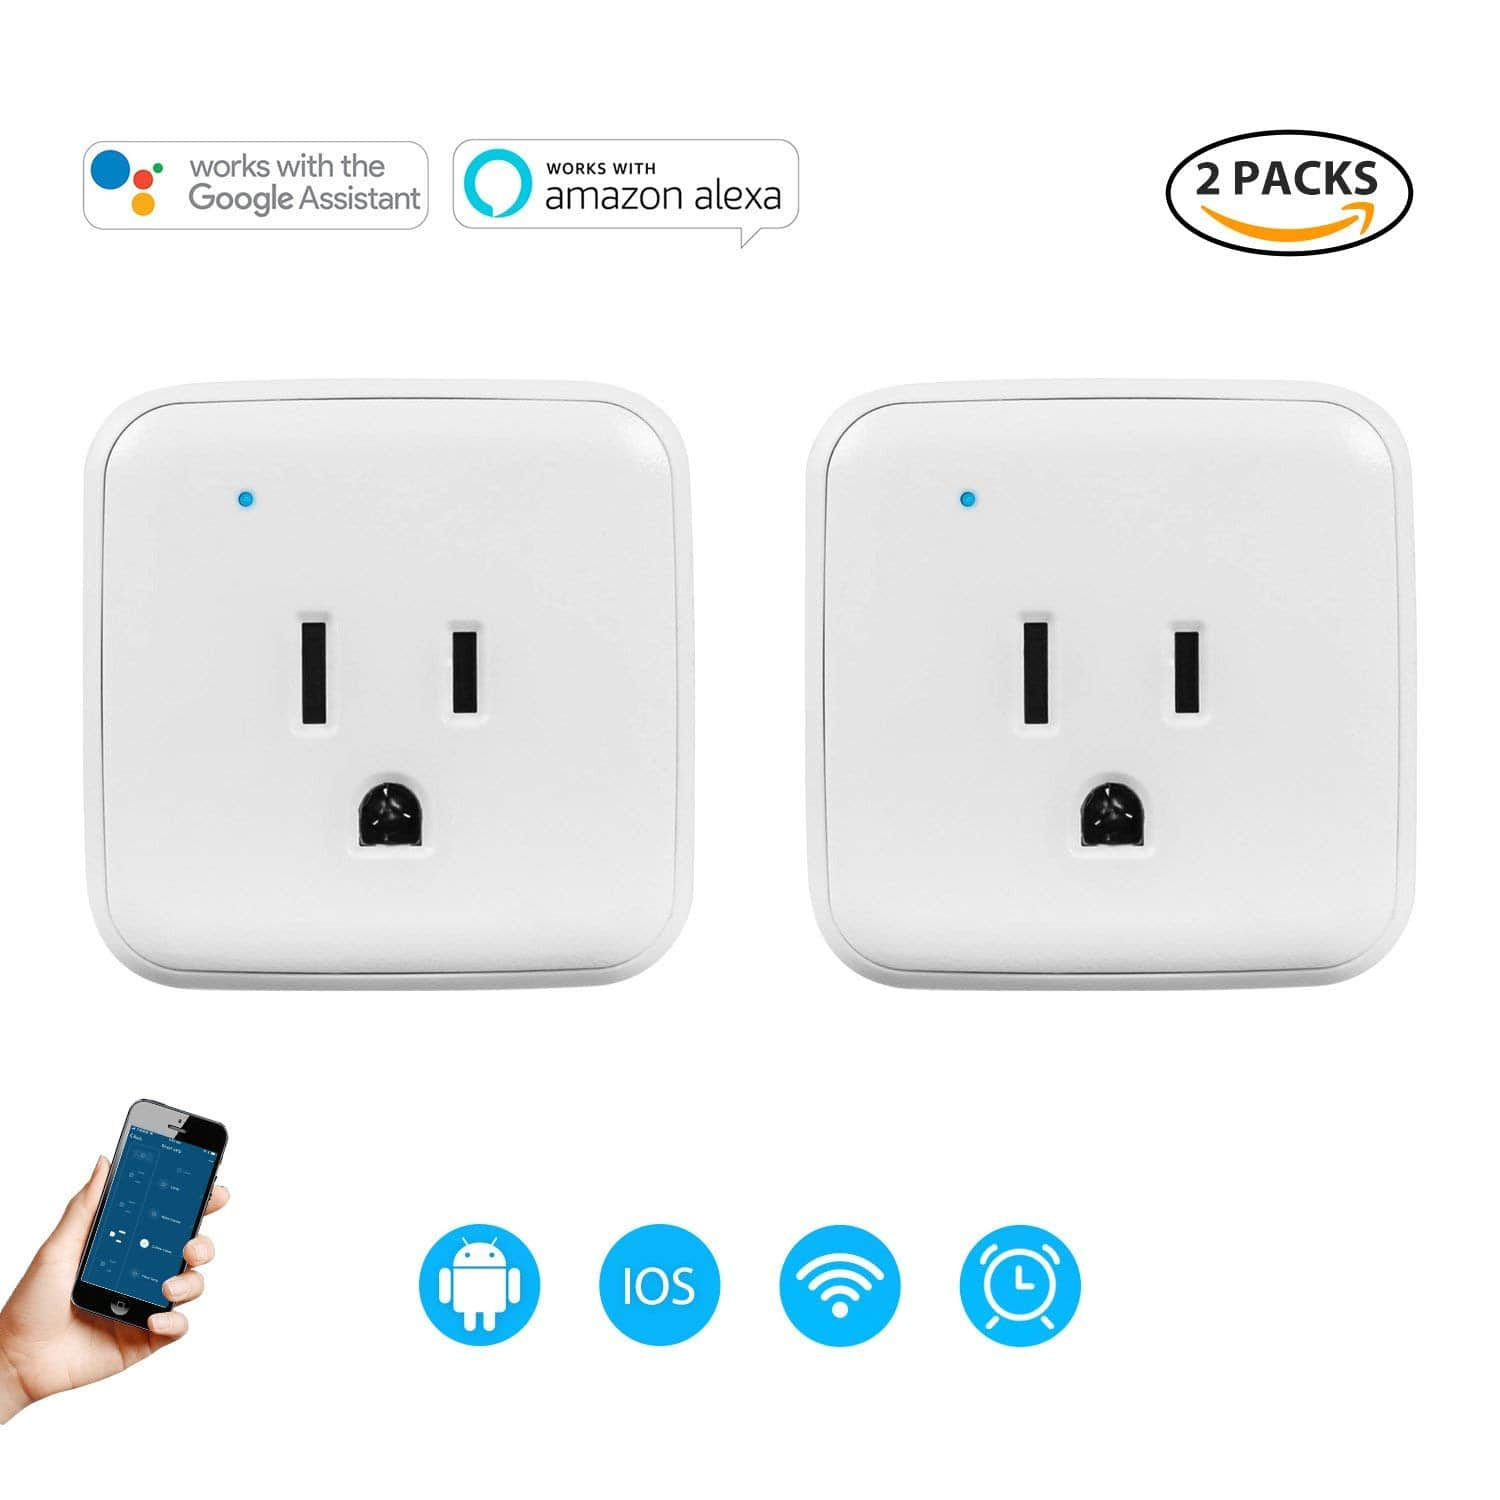 2 Pack 1250W/5A Wi-Fi Control Smart Plug 20% OFF & 12-Outlet Heavy-Duty Power Strip with 15 Amps, 15-Foot Power Cord 5% OFF